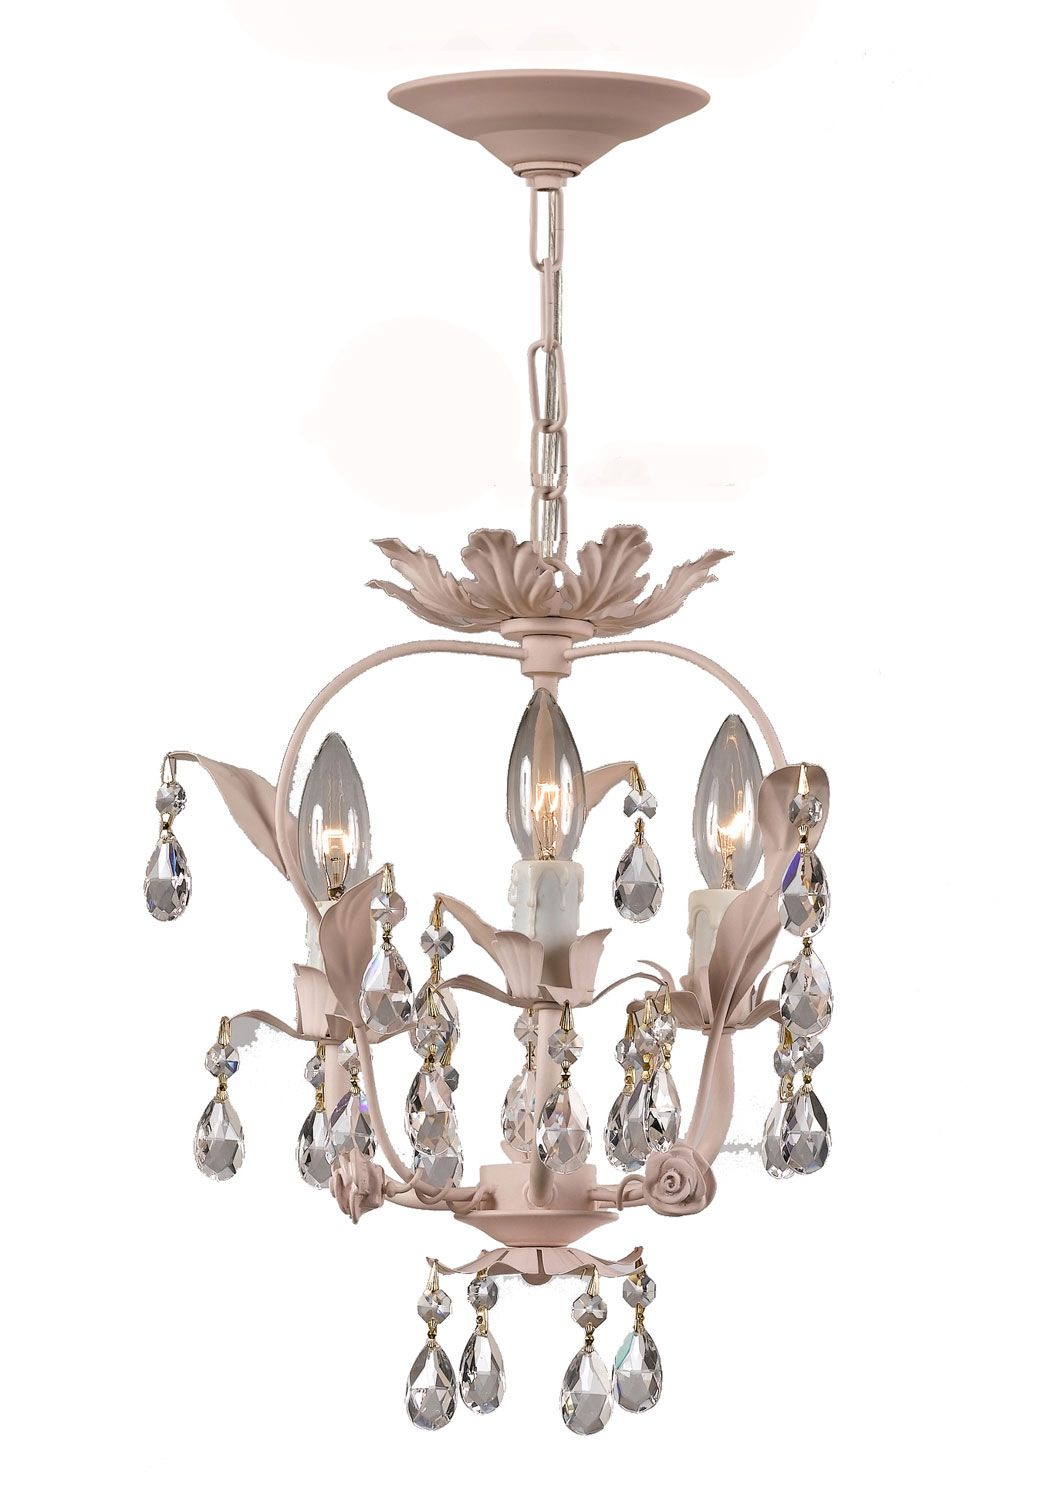 Paris Flea Market Handpainted Wrought Iron Fl Mini Chandelier In Blush Finish S Suggested To Be Mounted Dining Room Entry Foyer Living